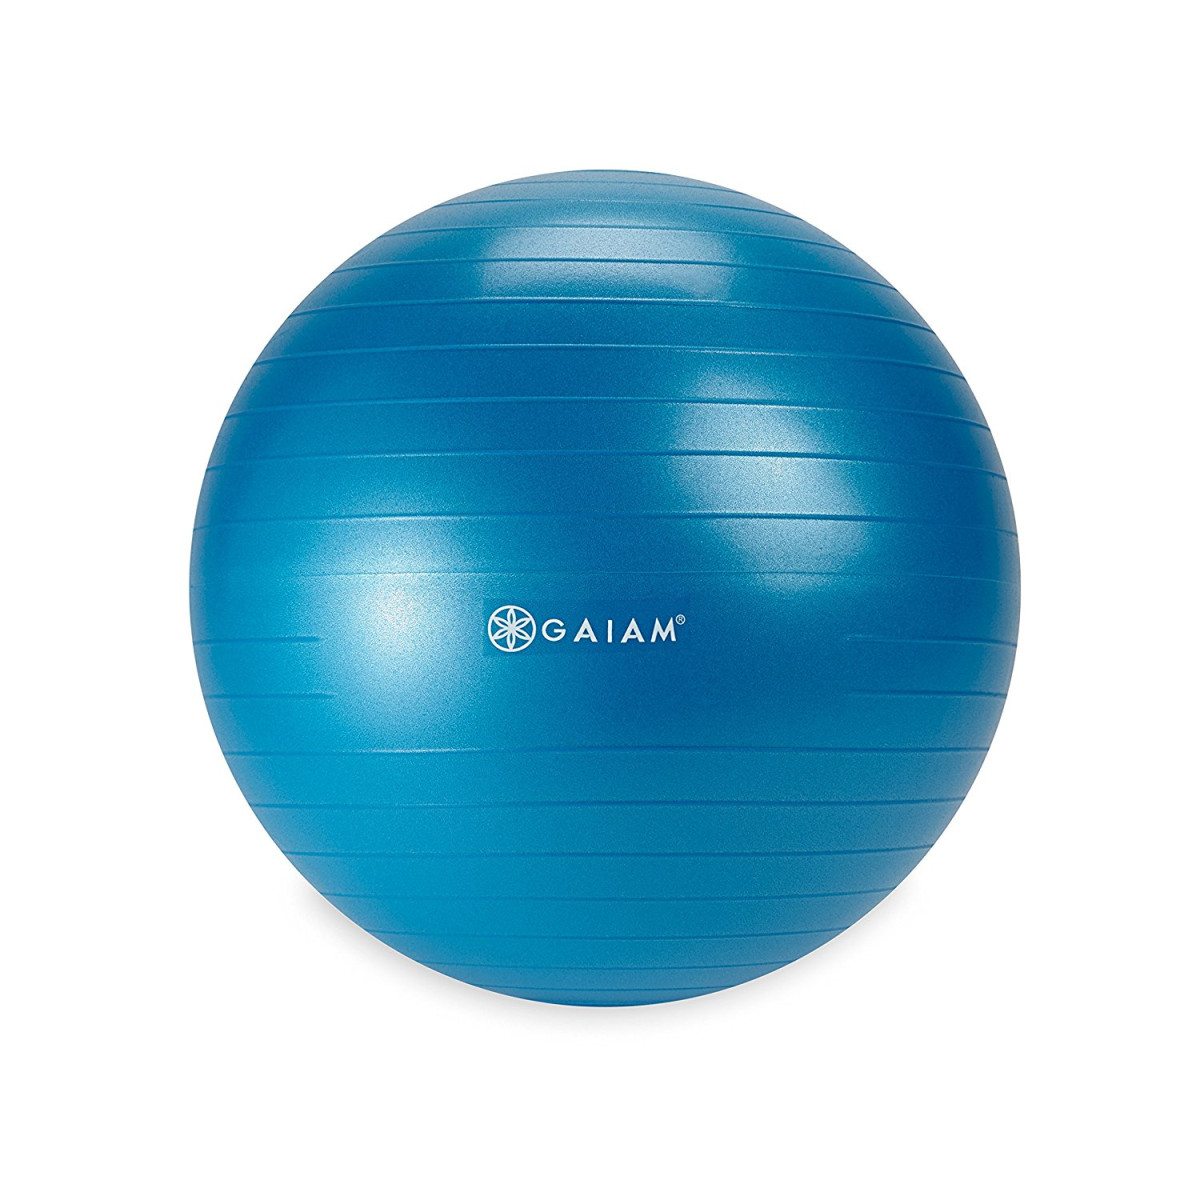 Groovy Gaiam Kids Balance Ball Anti Burst Exercise Stability Ball For Kids With Air Pump 45Cm Caraccident5 Cool Chair Designs And Ideas Caraccident5Info